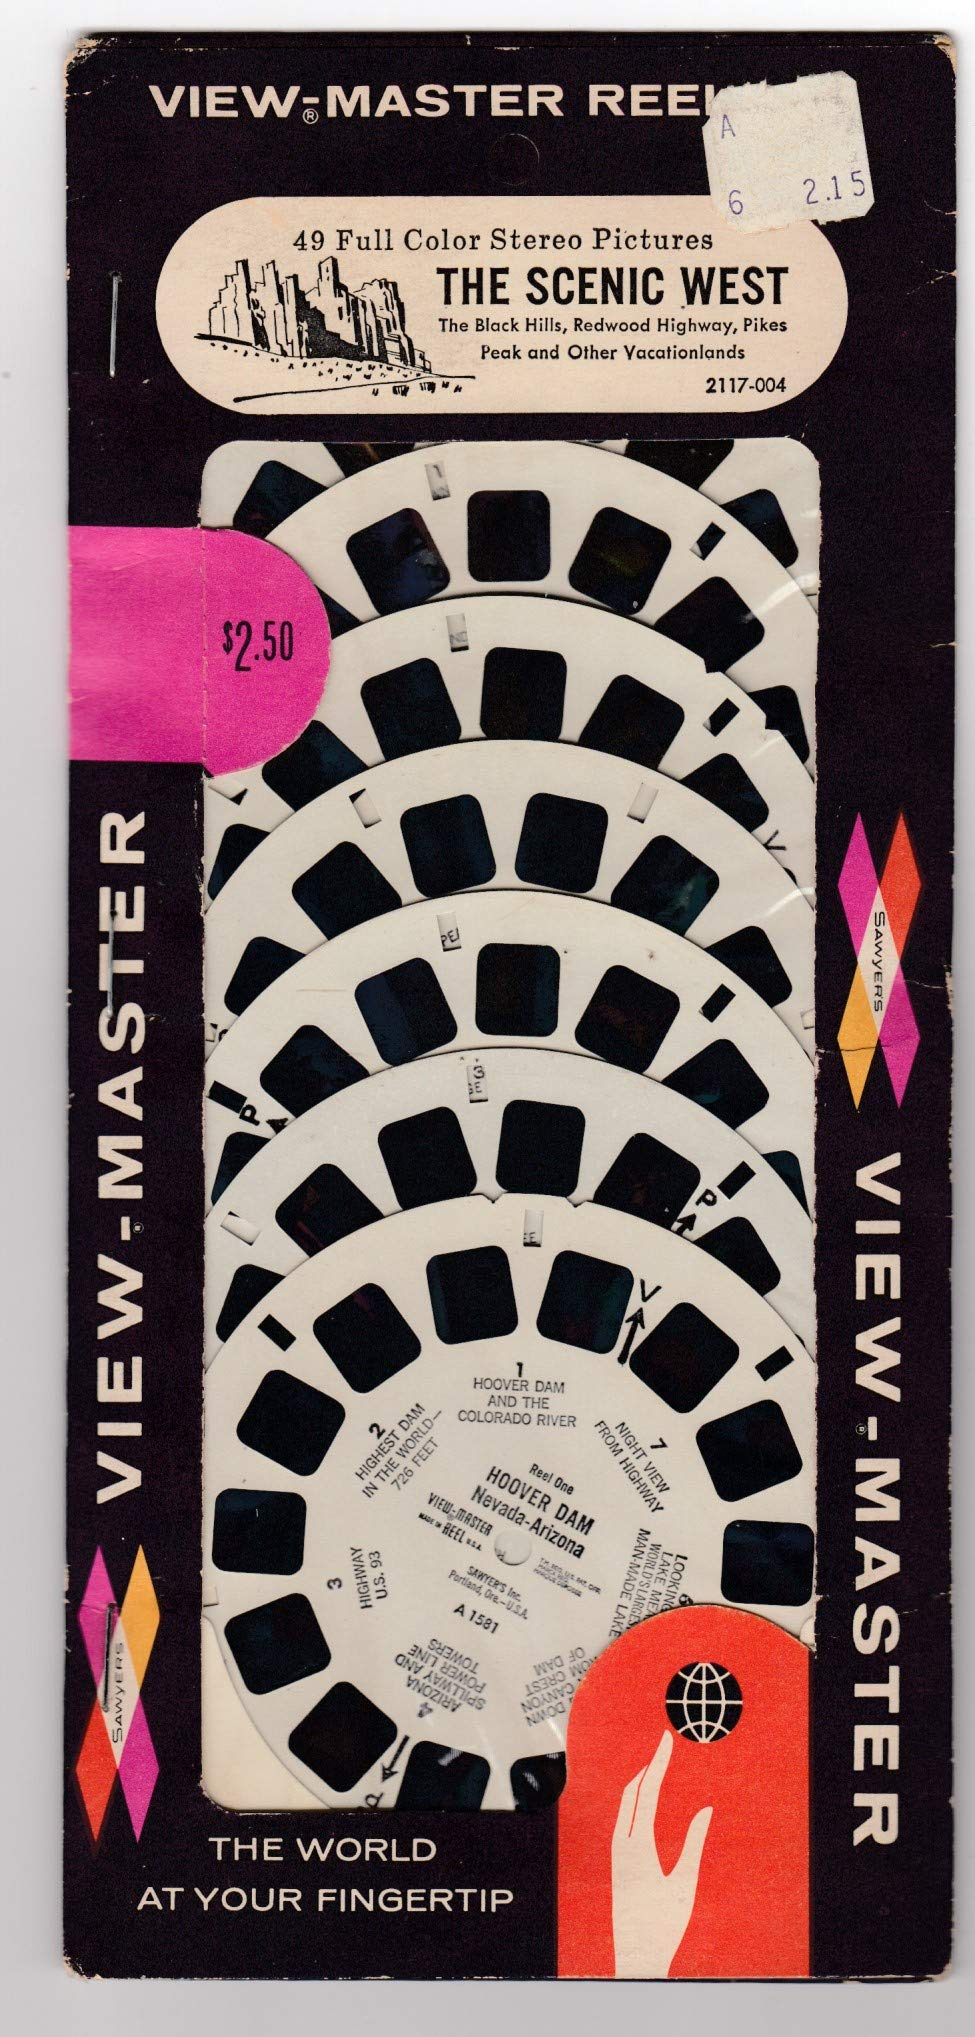 View Master SAWYER'S Reel PAK The Scenic WEST Unopened 7 REELS Including The Black Hills, Redwood Highway, Pikes Peak, and Vacationlands by View Master